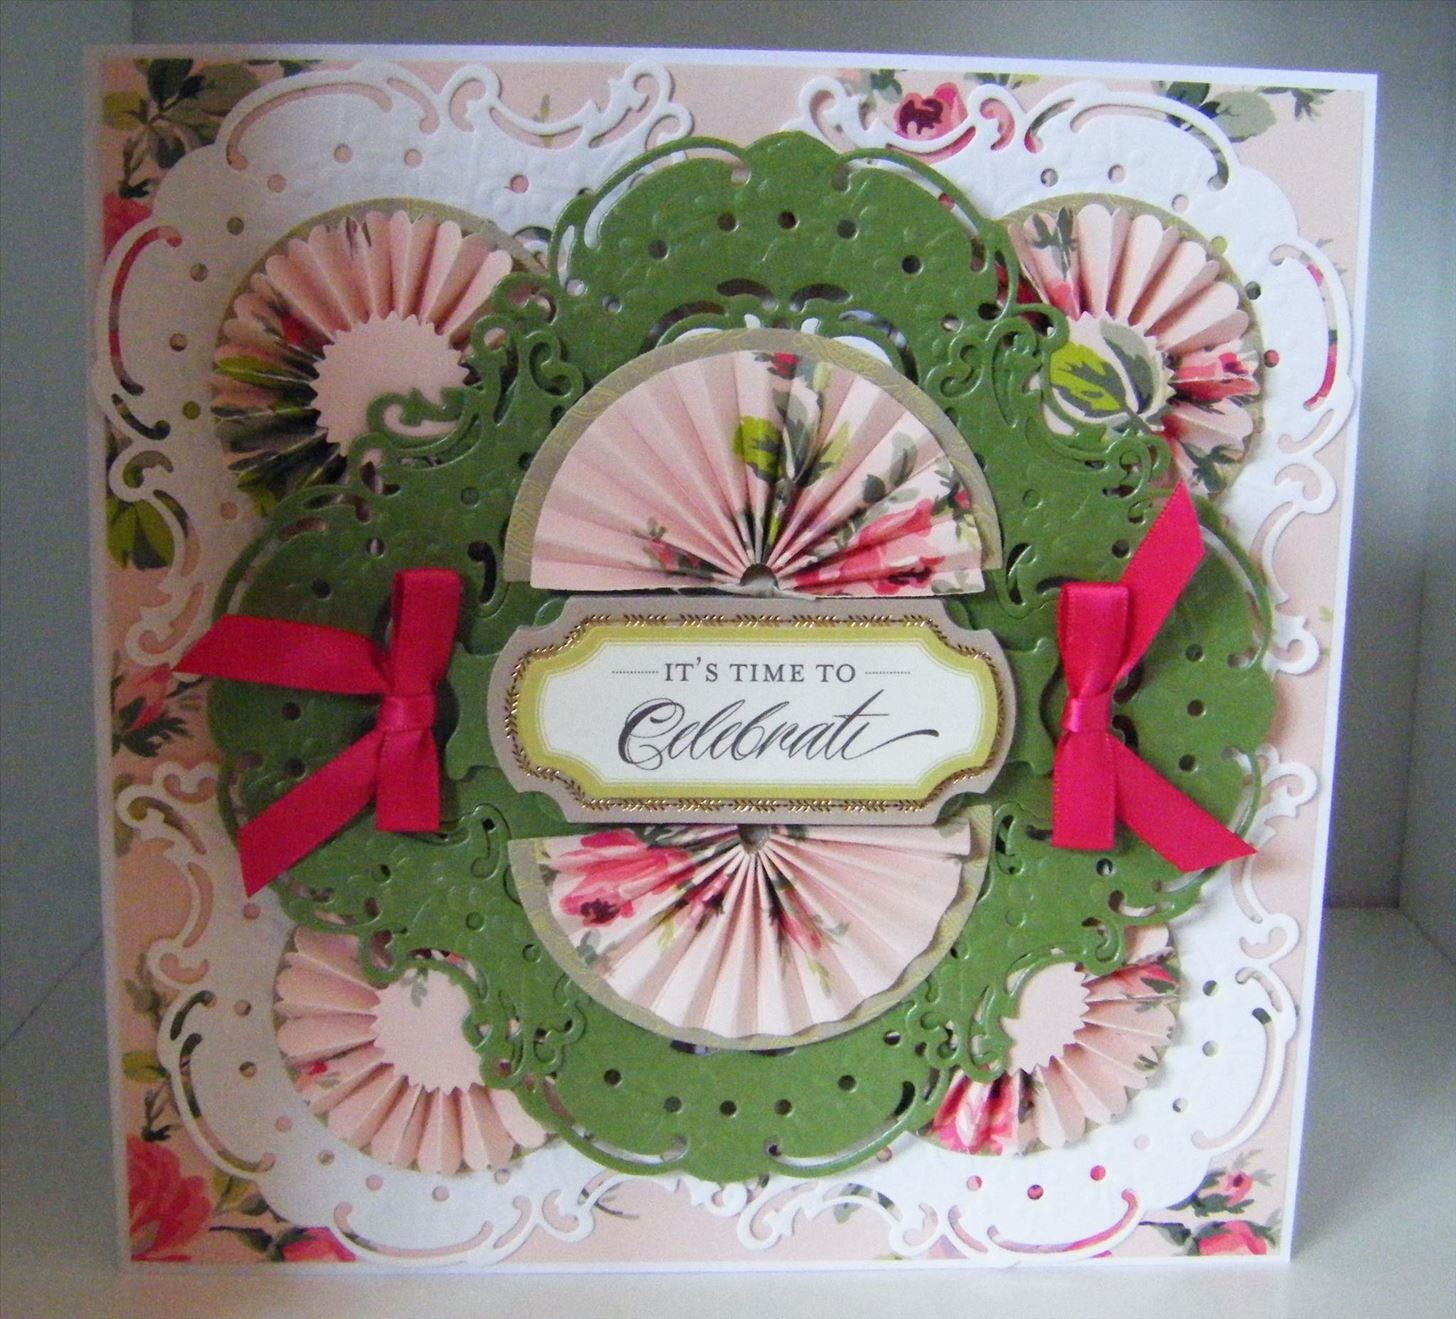 How to Make Ornate Frame 3D Layer Card « Papercraft :: WonderHowTo